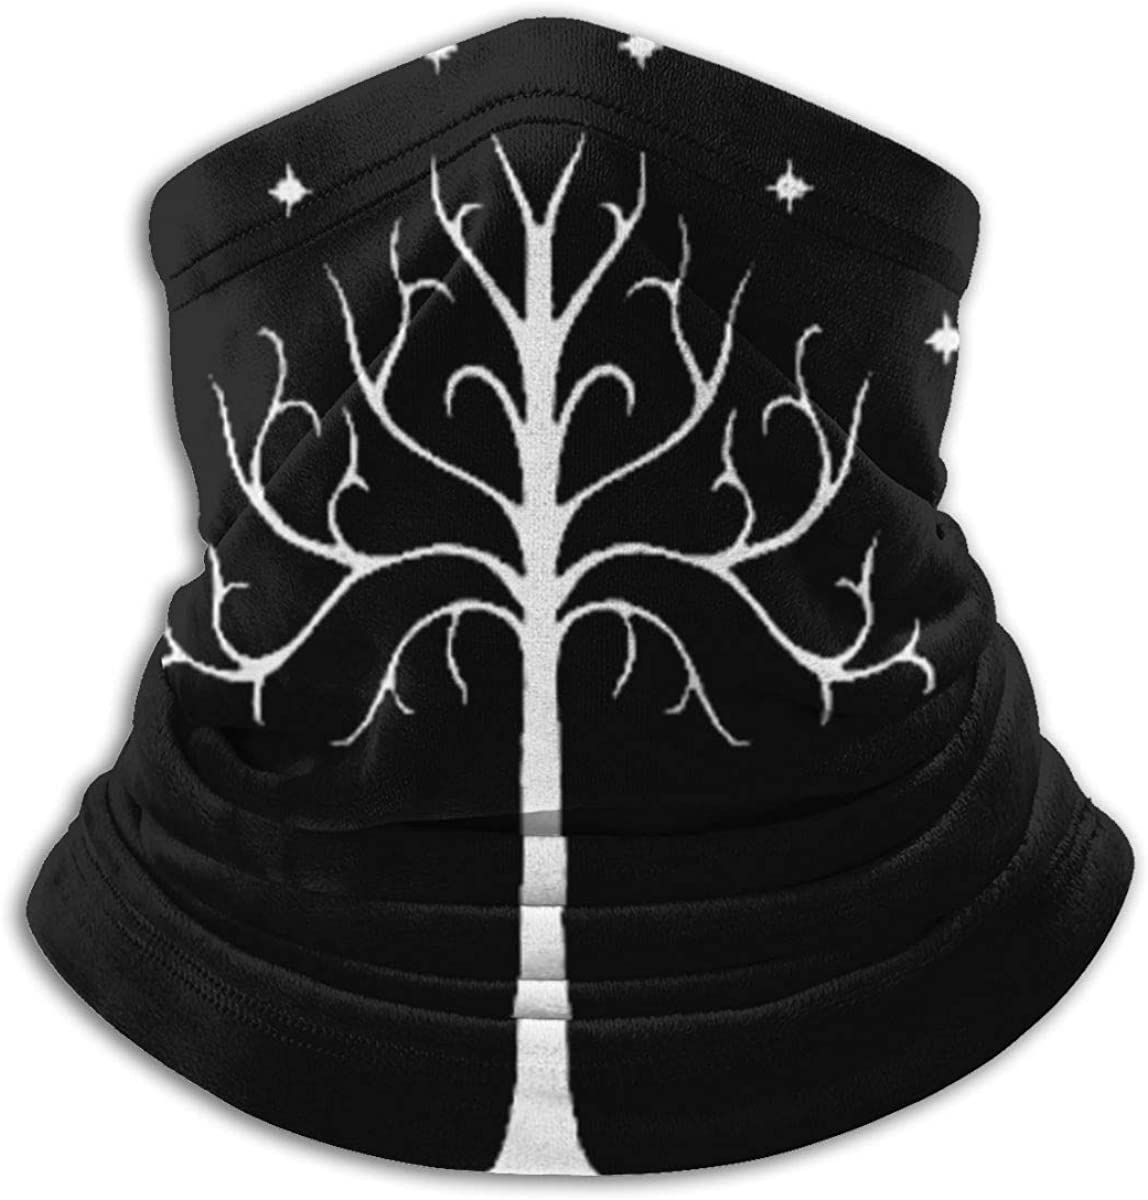 Lord of The Rings Neck Warmer Gaiter Windproof Mouth Face Mask Scarf for Men Women Black